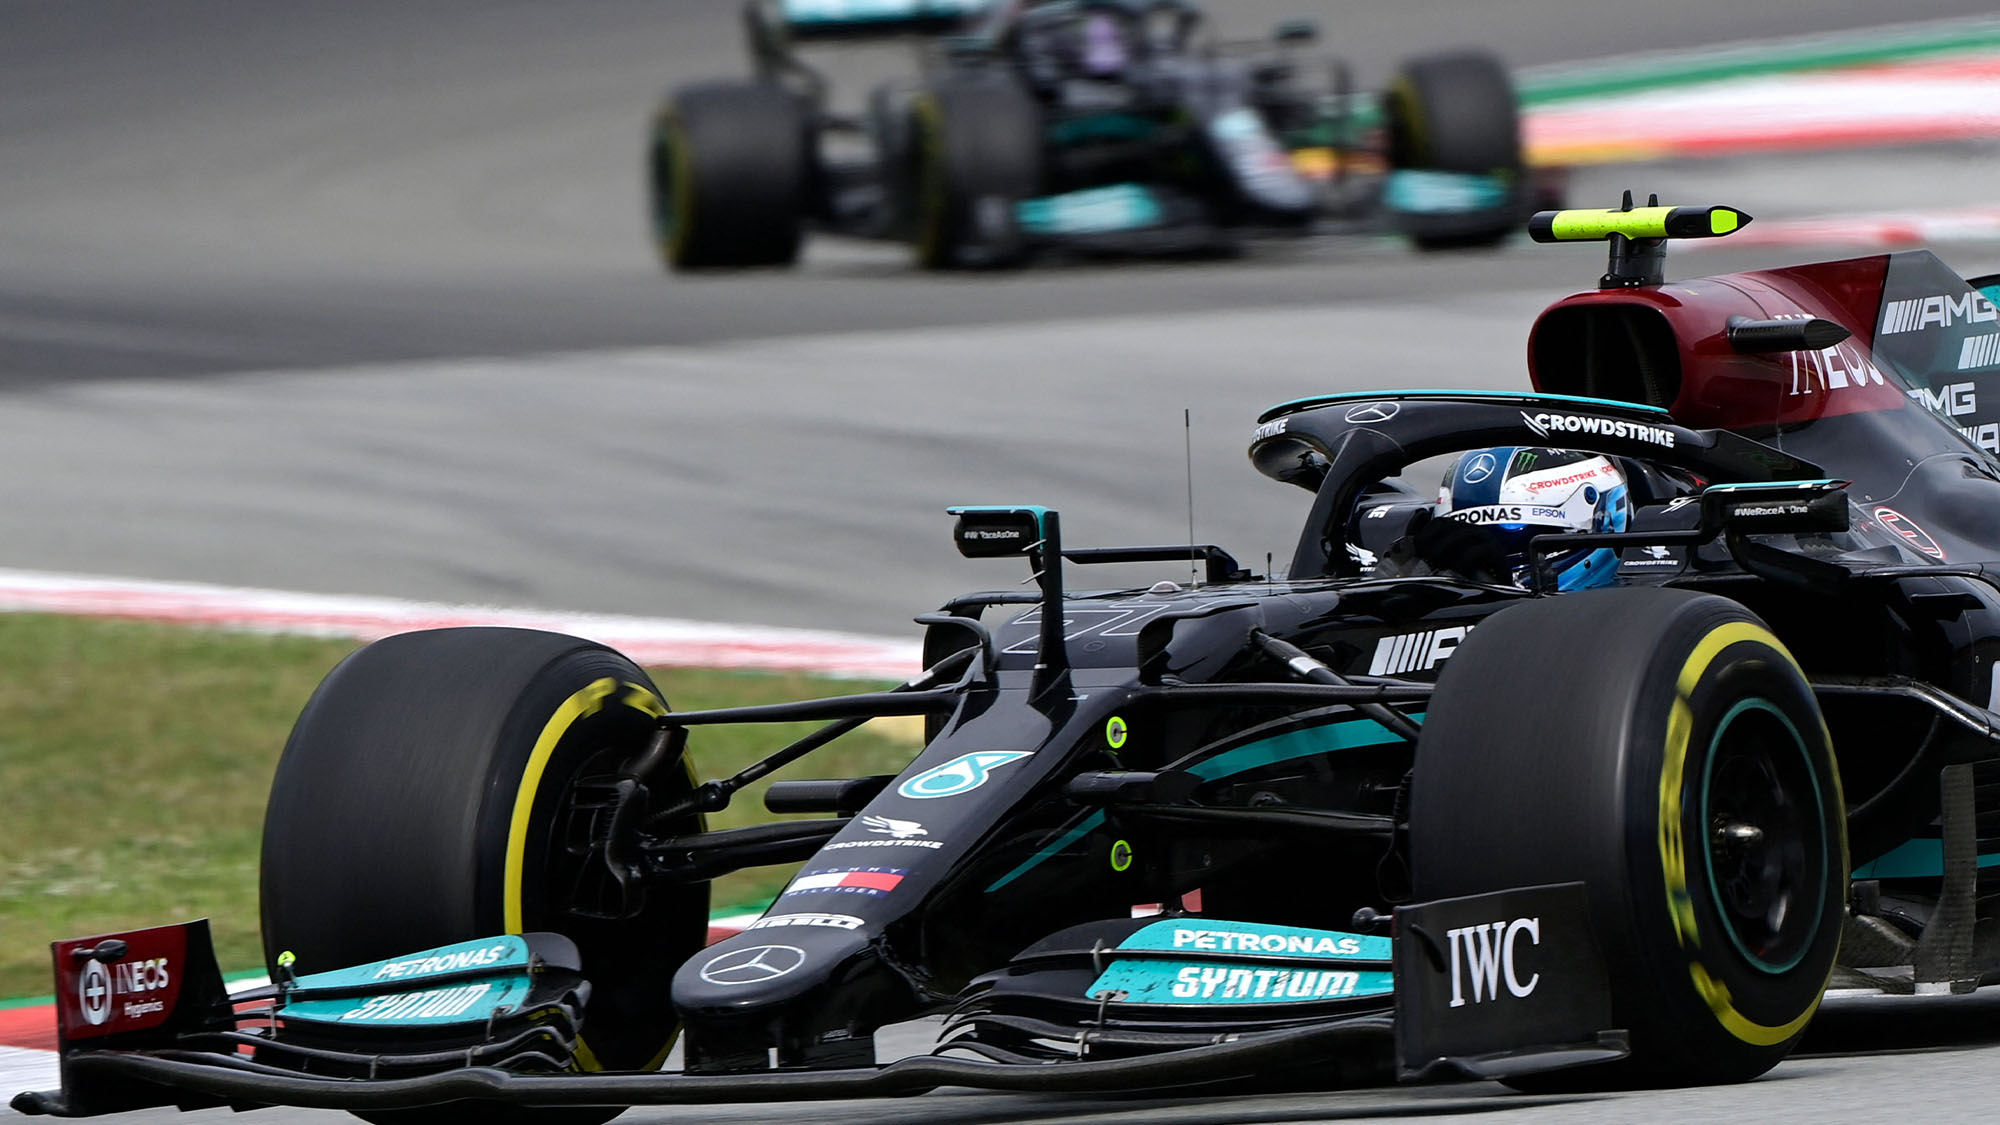 Mercedes' Finnish driver Valtteri Bottas drives ahead of Mercedes' British driver Lewis Hamilton during the Spanish Formula One Grand Prix race at the Circuit de Catalunya on May 9, 2021 in Montmelo on the outskirts of Barcelona. (Photo by JAVIER SORIANO / AFP) (Photo by JAVIER SORIANO/AFP via Getty Images)